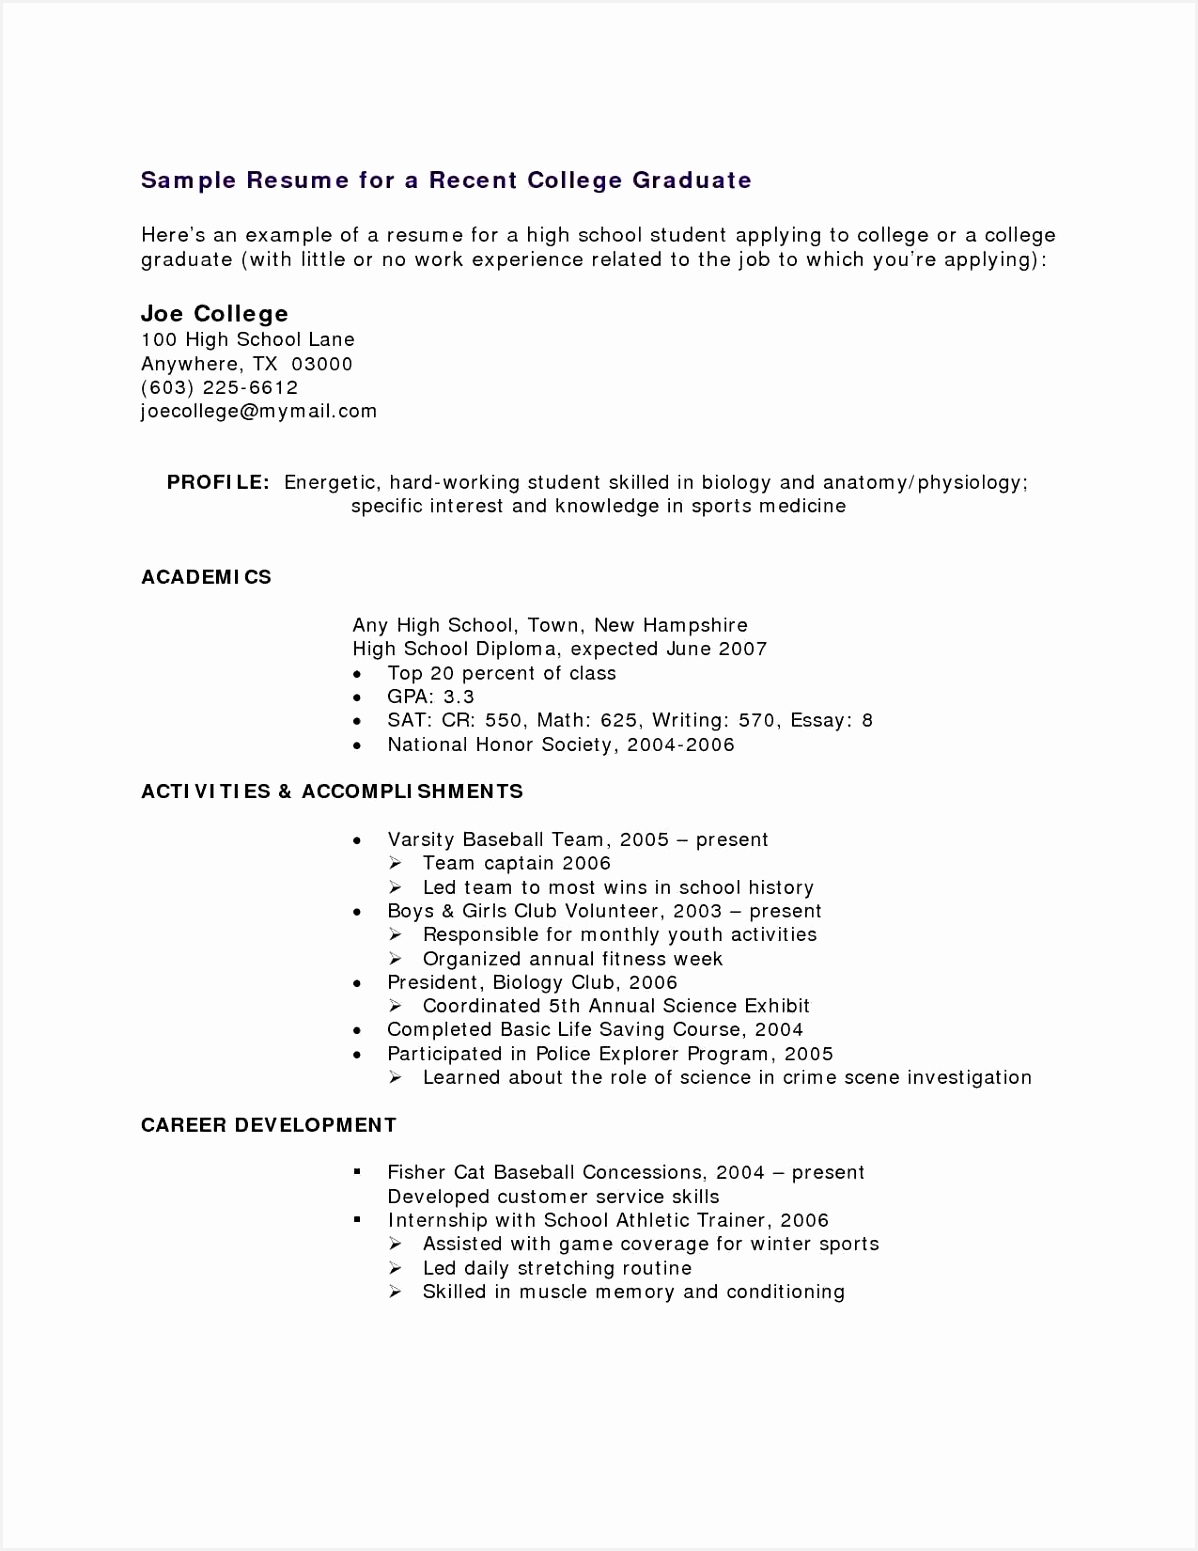 Resume Samples for Graduate School Gchle Inspirational Student Affairs Resume Samples Best Resume Examples for Jobs with15511198